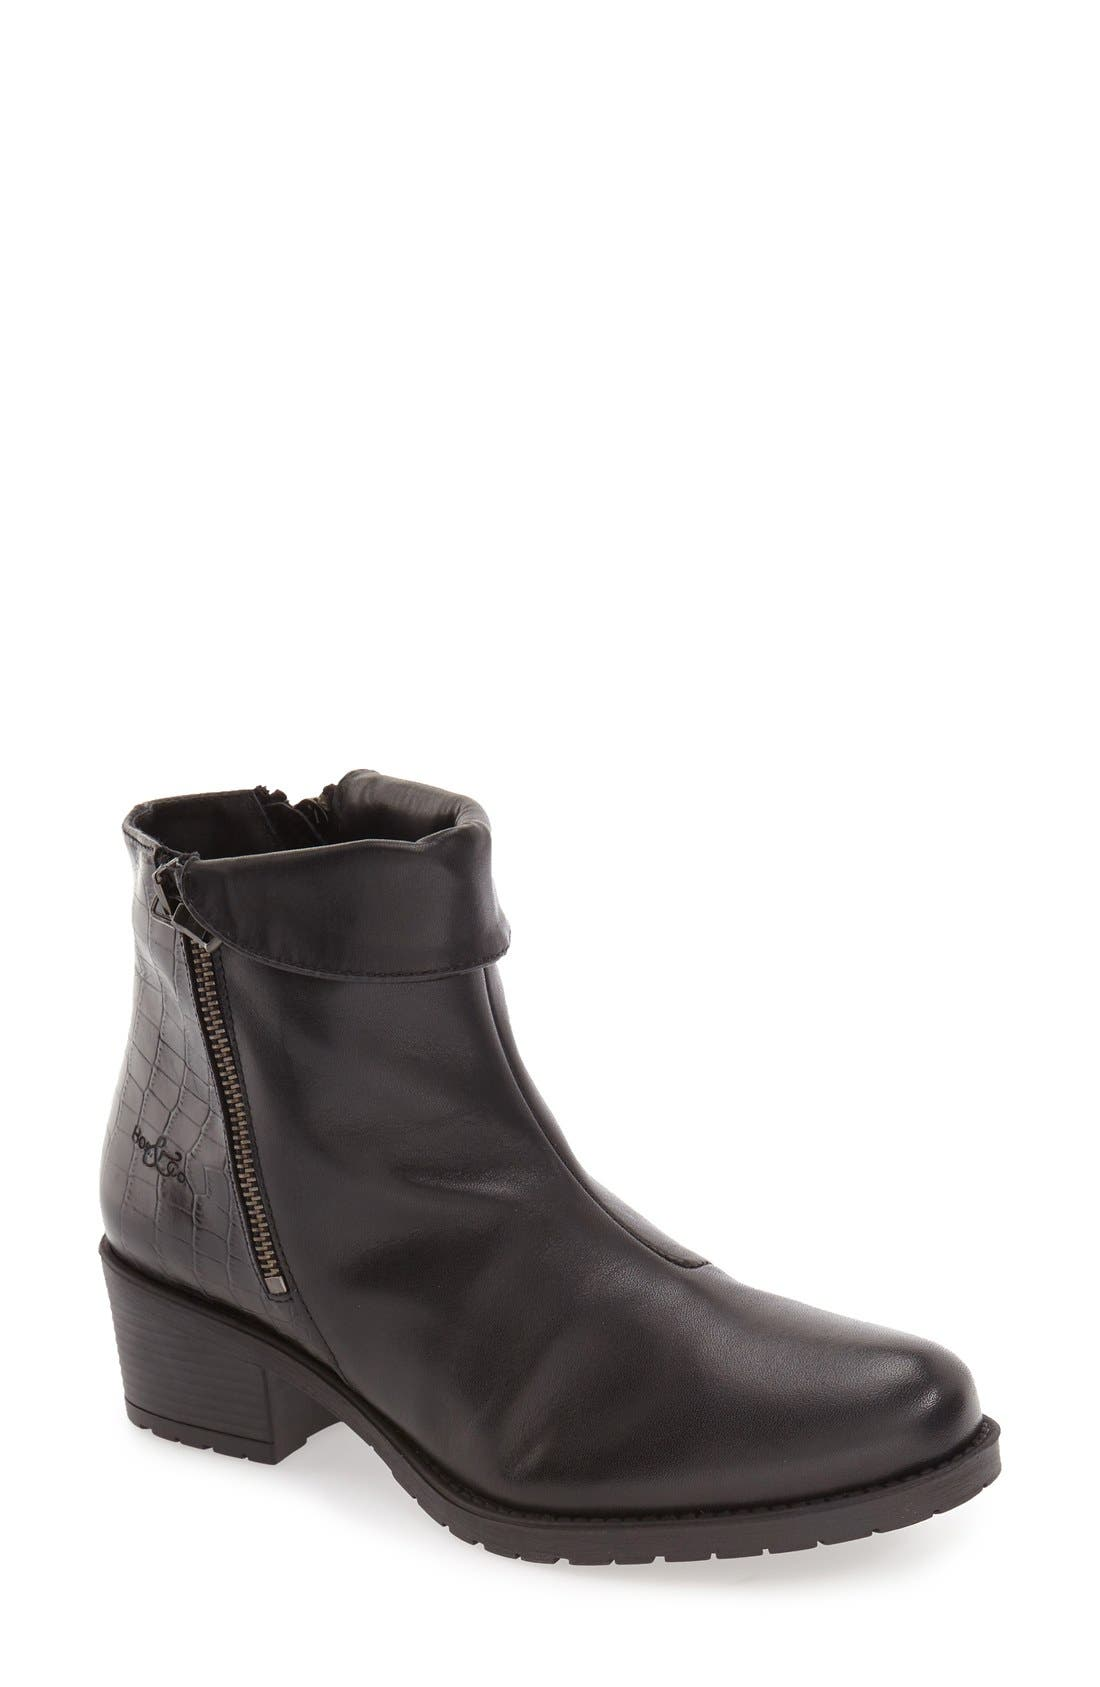 Bos. & Co. 'Borano' Slouchy Waterproof Bootie (Women)